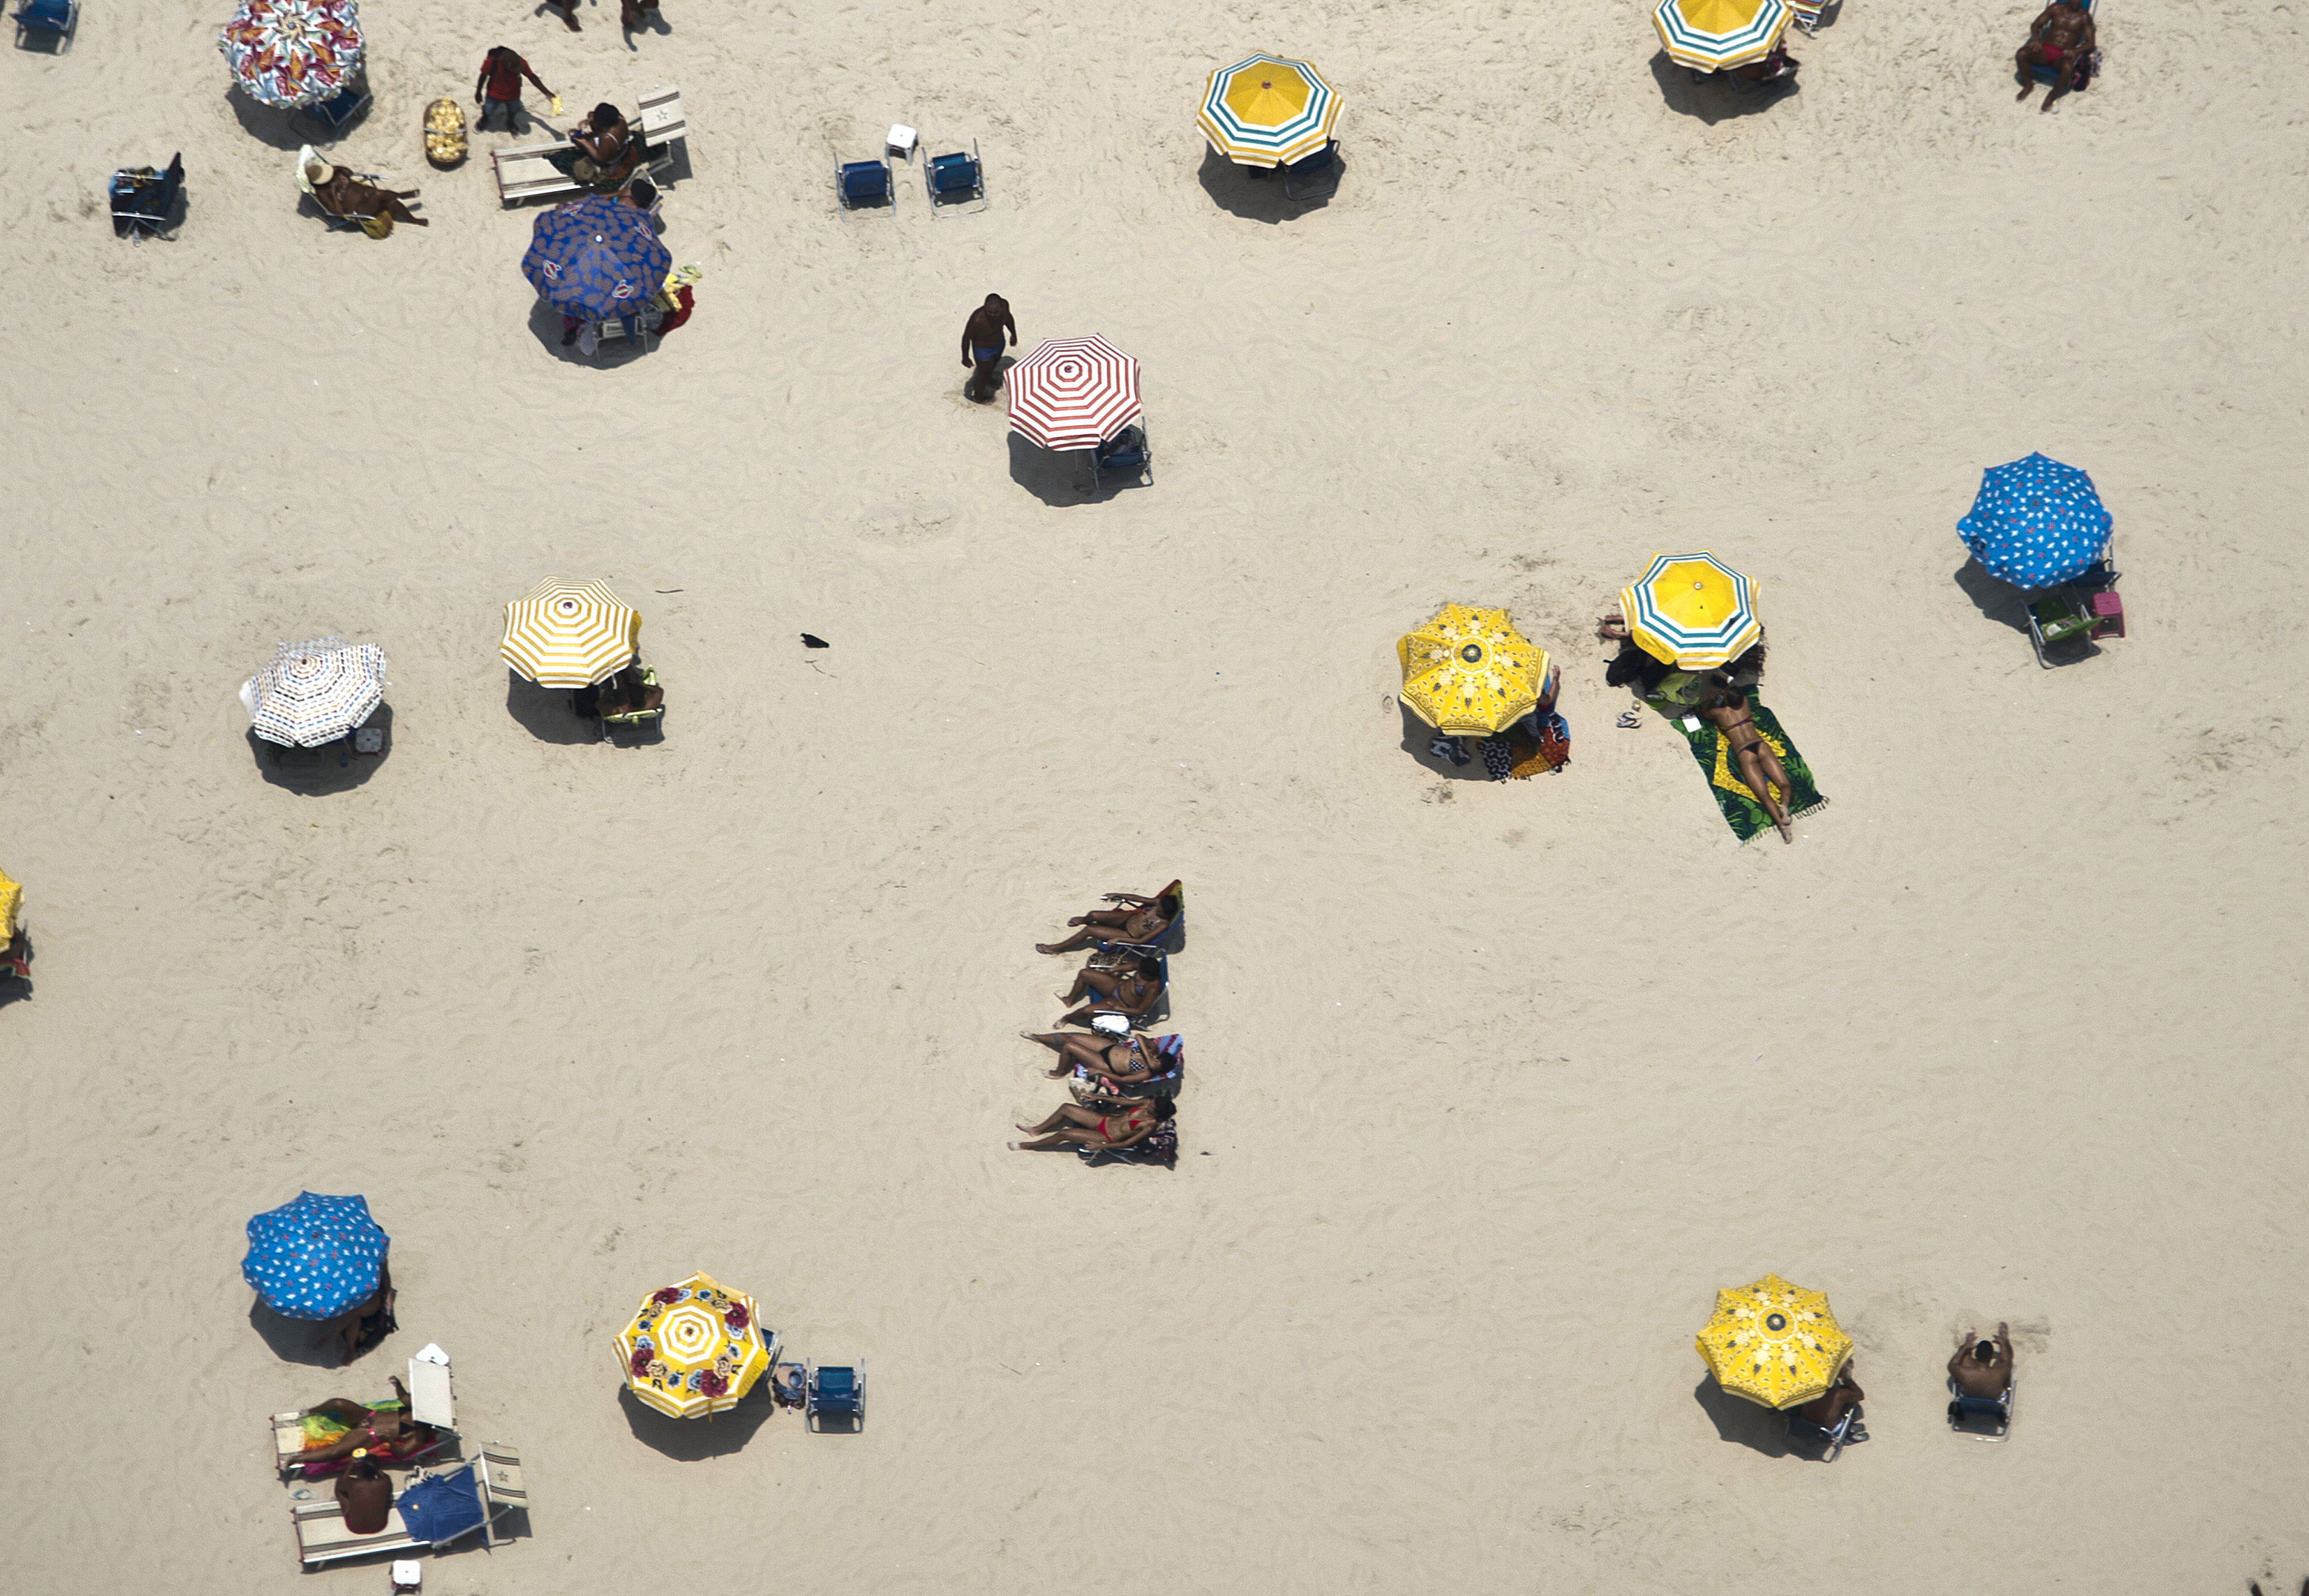 Slide 11 of 39: Aerial view of Copacabana Beach in Rio de Janeiro, Brazil on February 3, 2016. With temperatures reaching the 36-40 degrees Celsius, tourists and residents alike remain on the city beaches until late at night to cool off. AFP PHOTO/VANDERLEI ALMEIDA / AFP / VANDERLEI ALMEIDA (Photo credit should read VANDERLEI ALMEIDA/AFP/Getty Images)